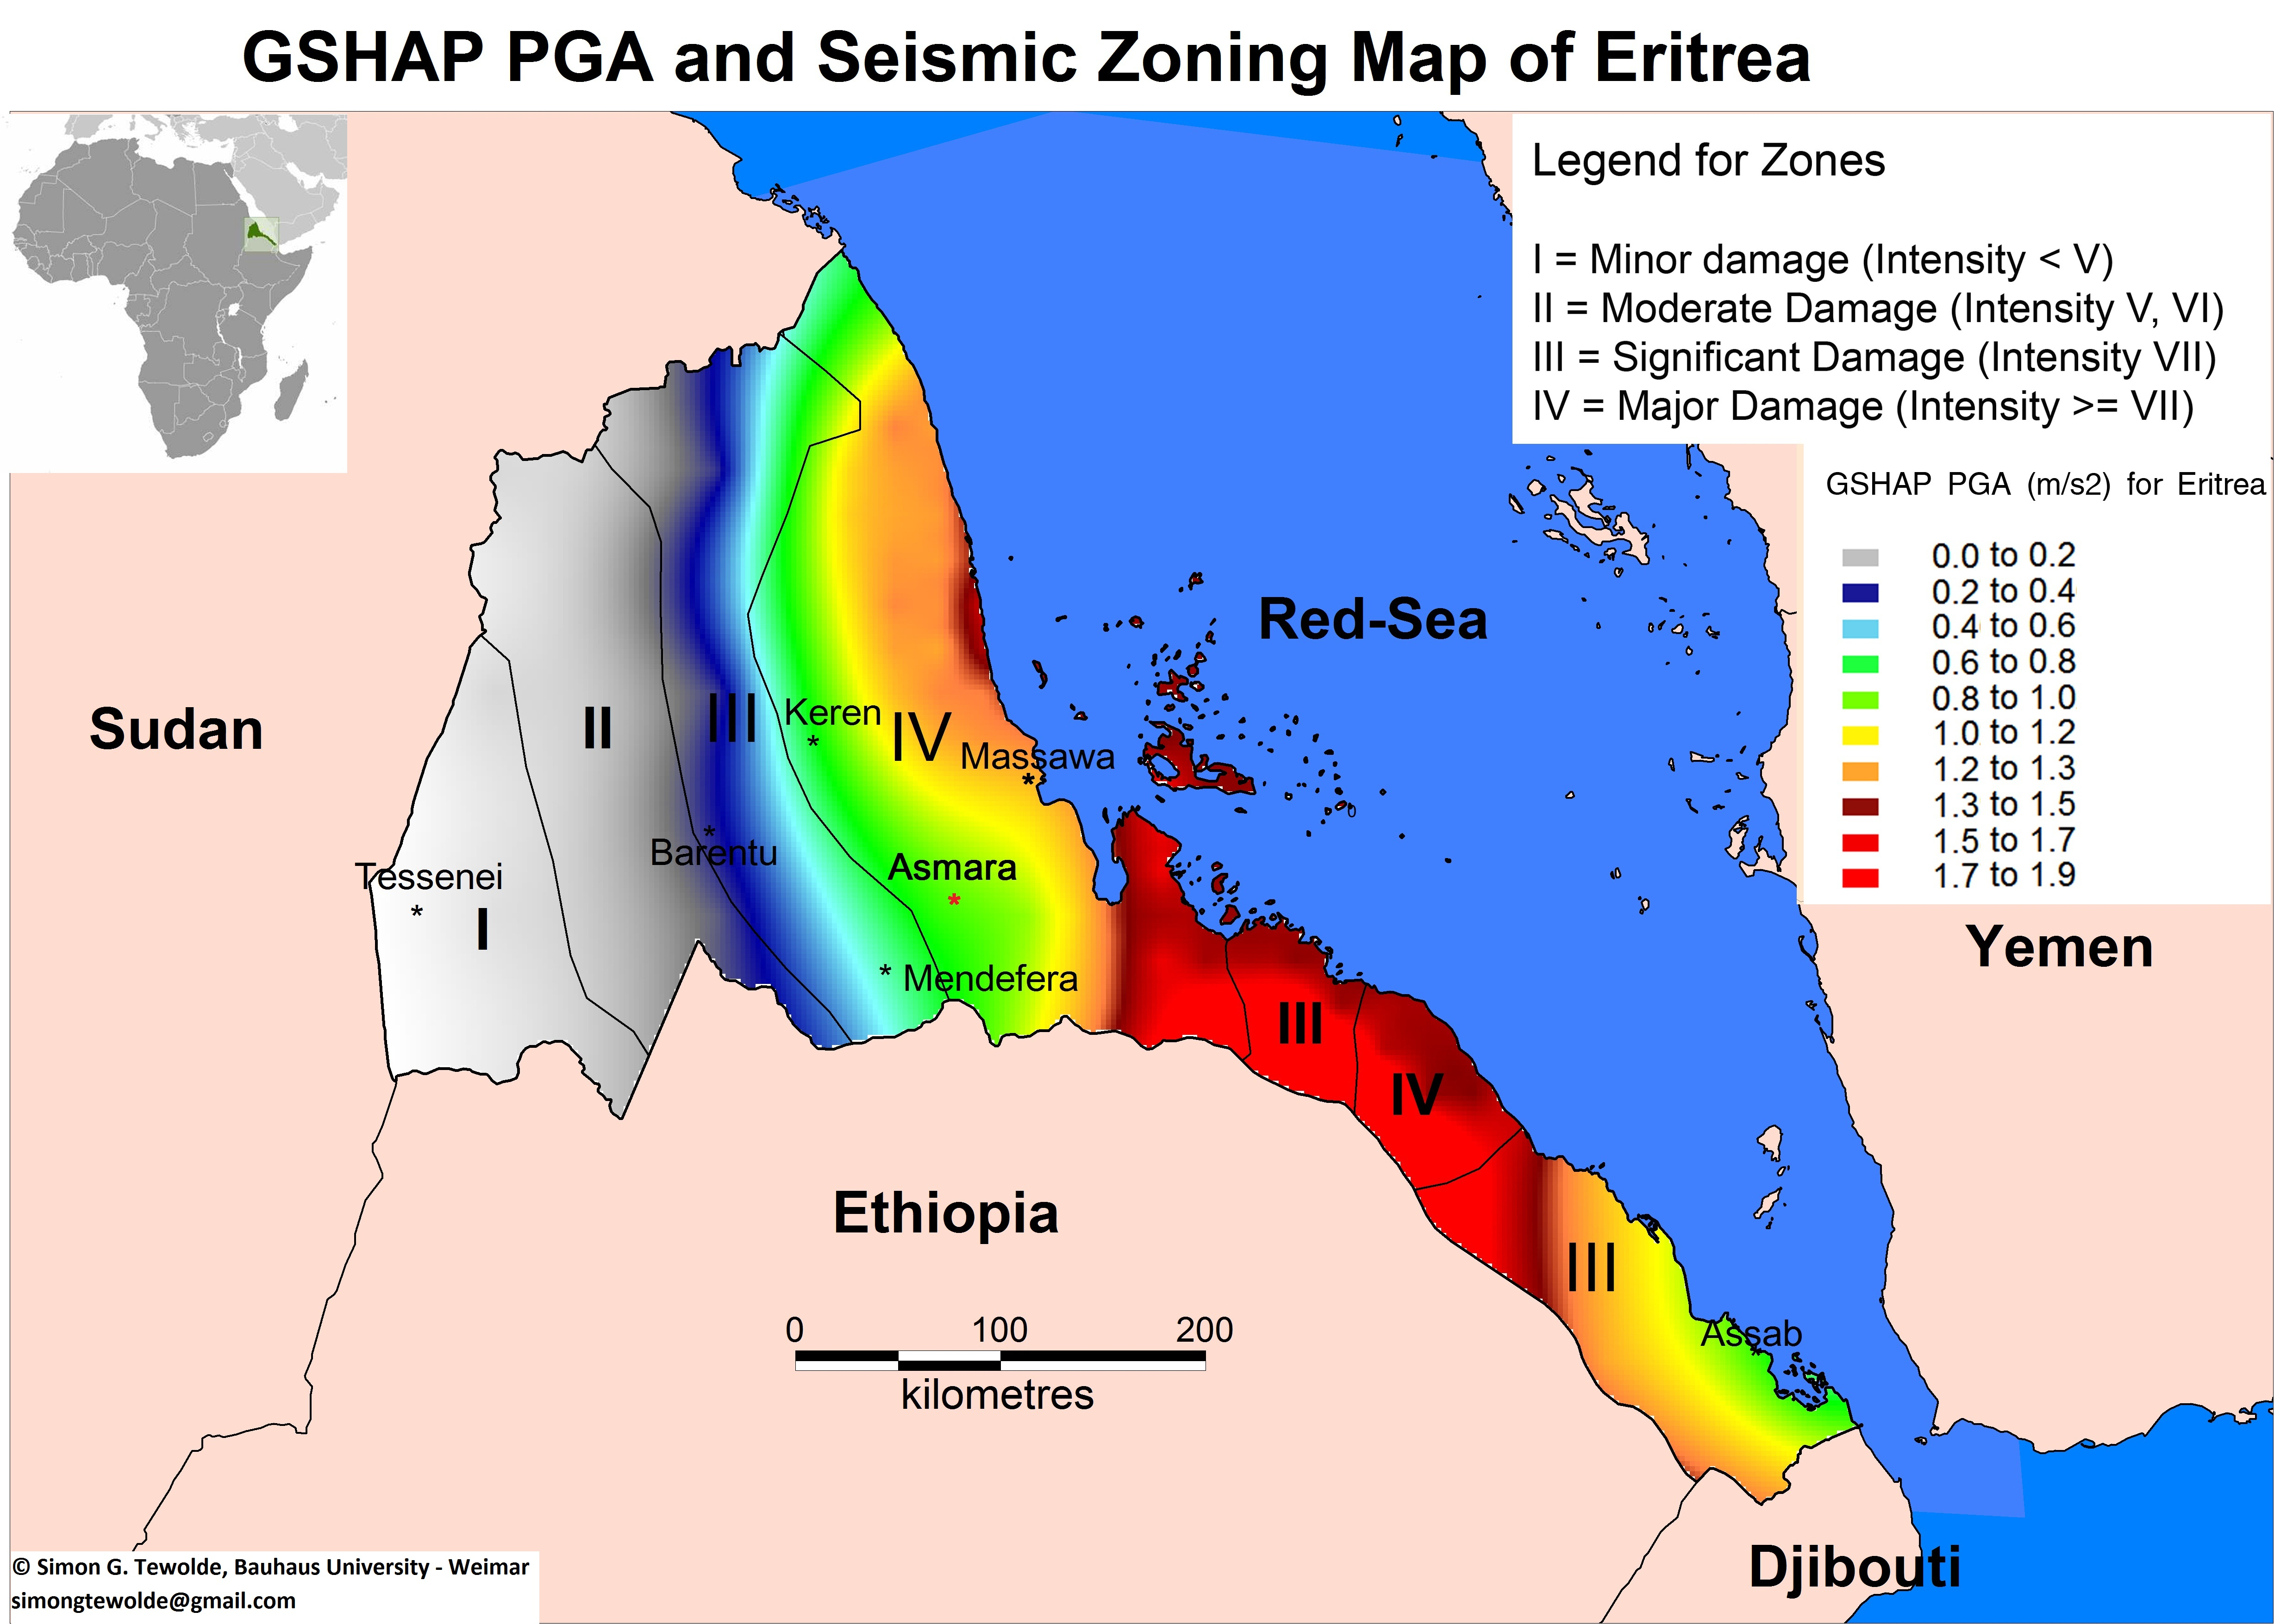 FileGSHAP Peak Ground Acceleration And Seismic Zoning Map Of - Eritrea time zone map